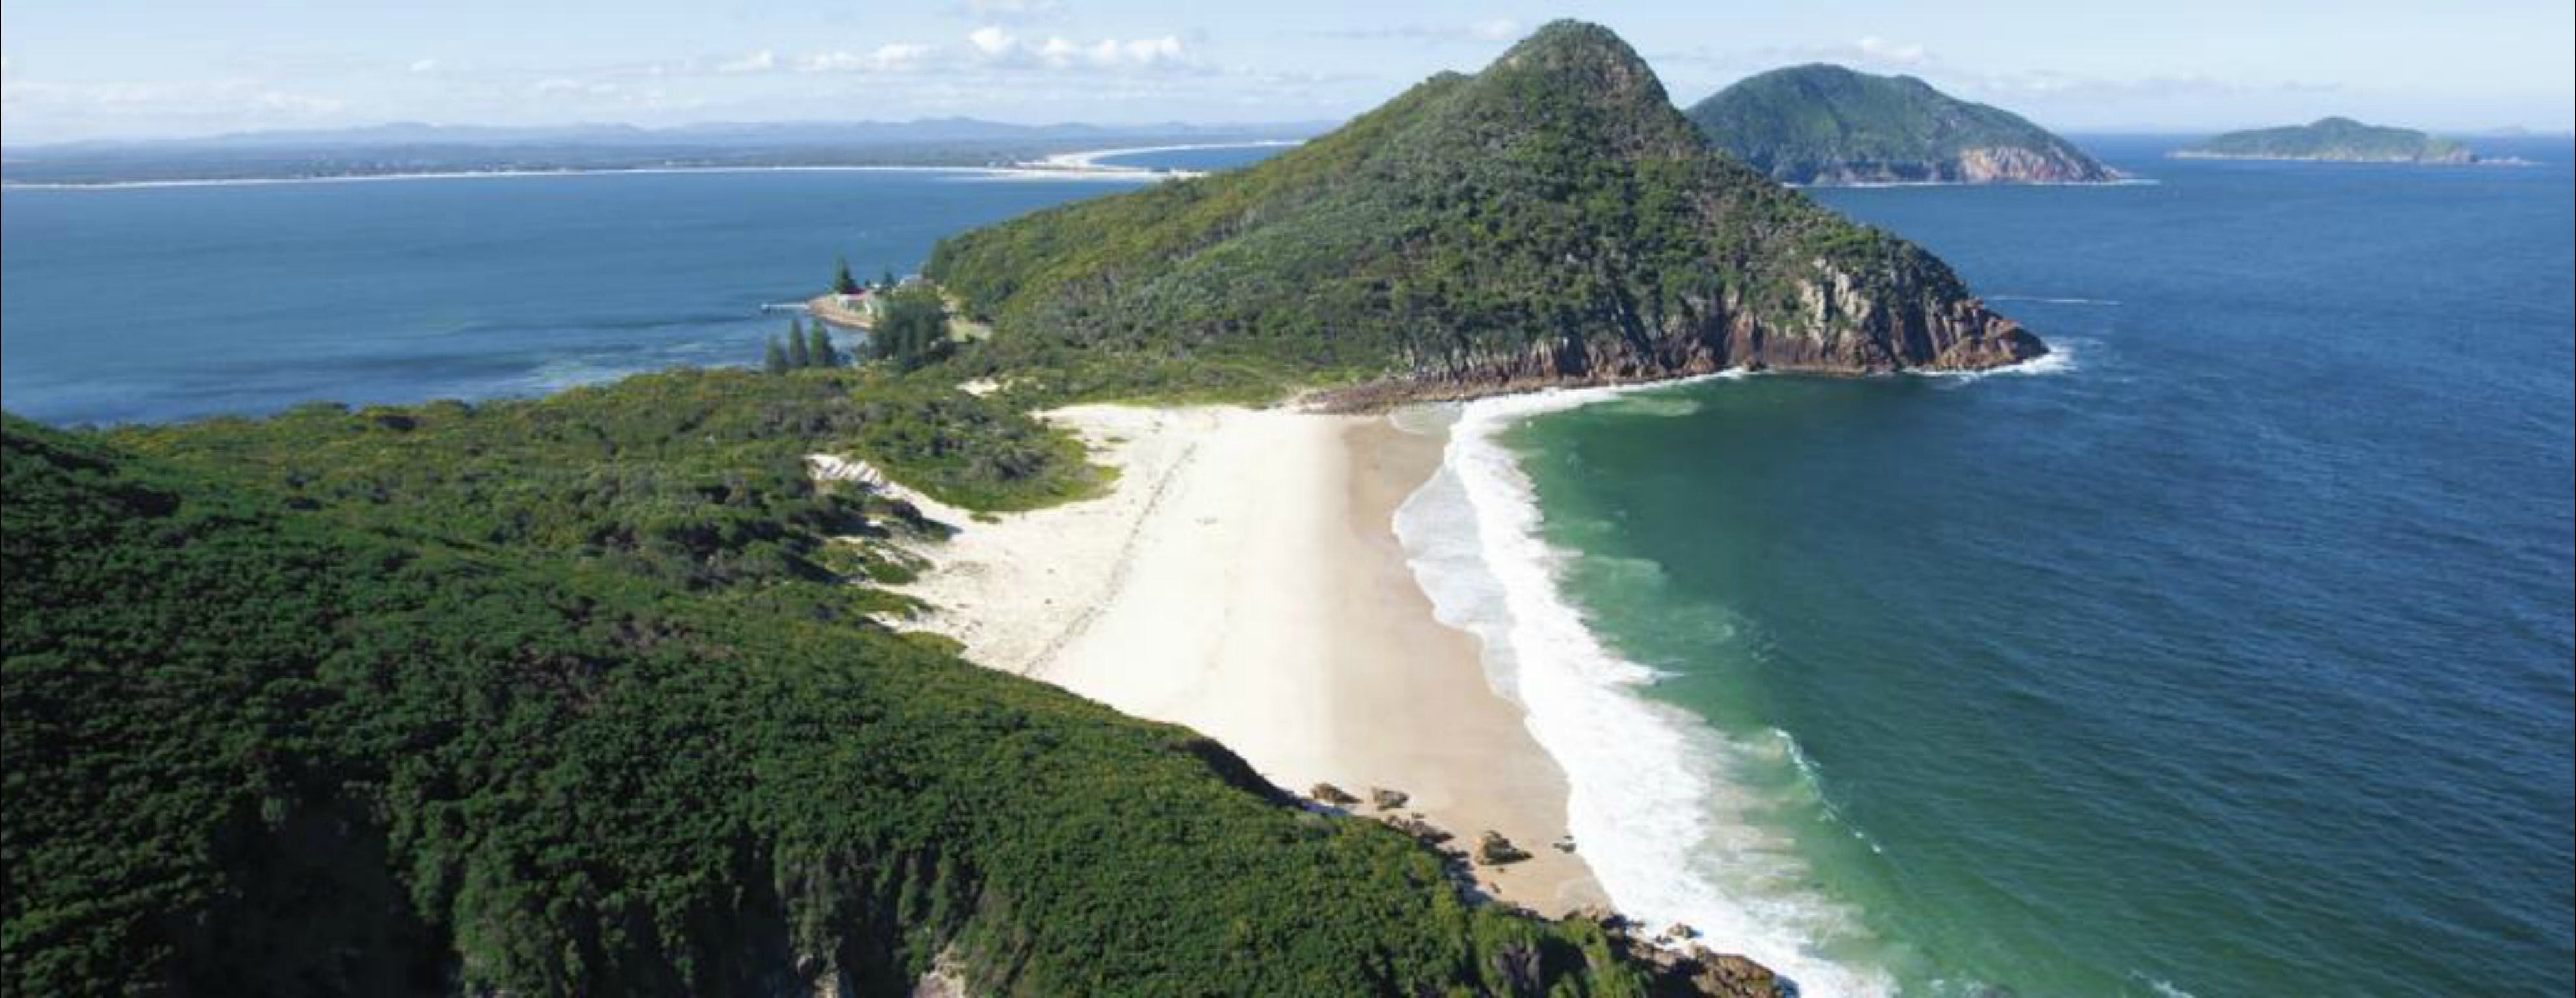 Port Stephens Great Lakes Marine Park - Accommodation Cairns